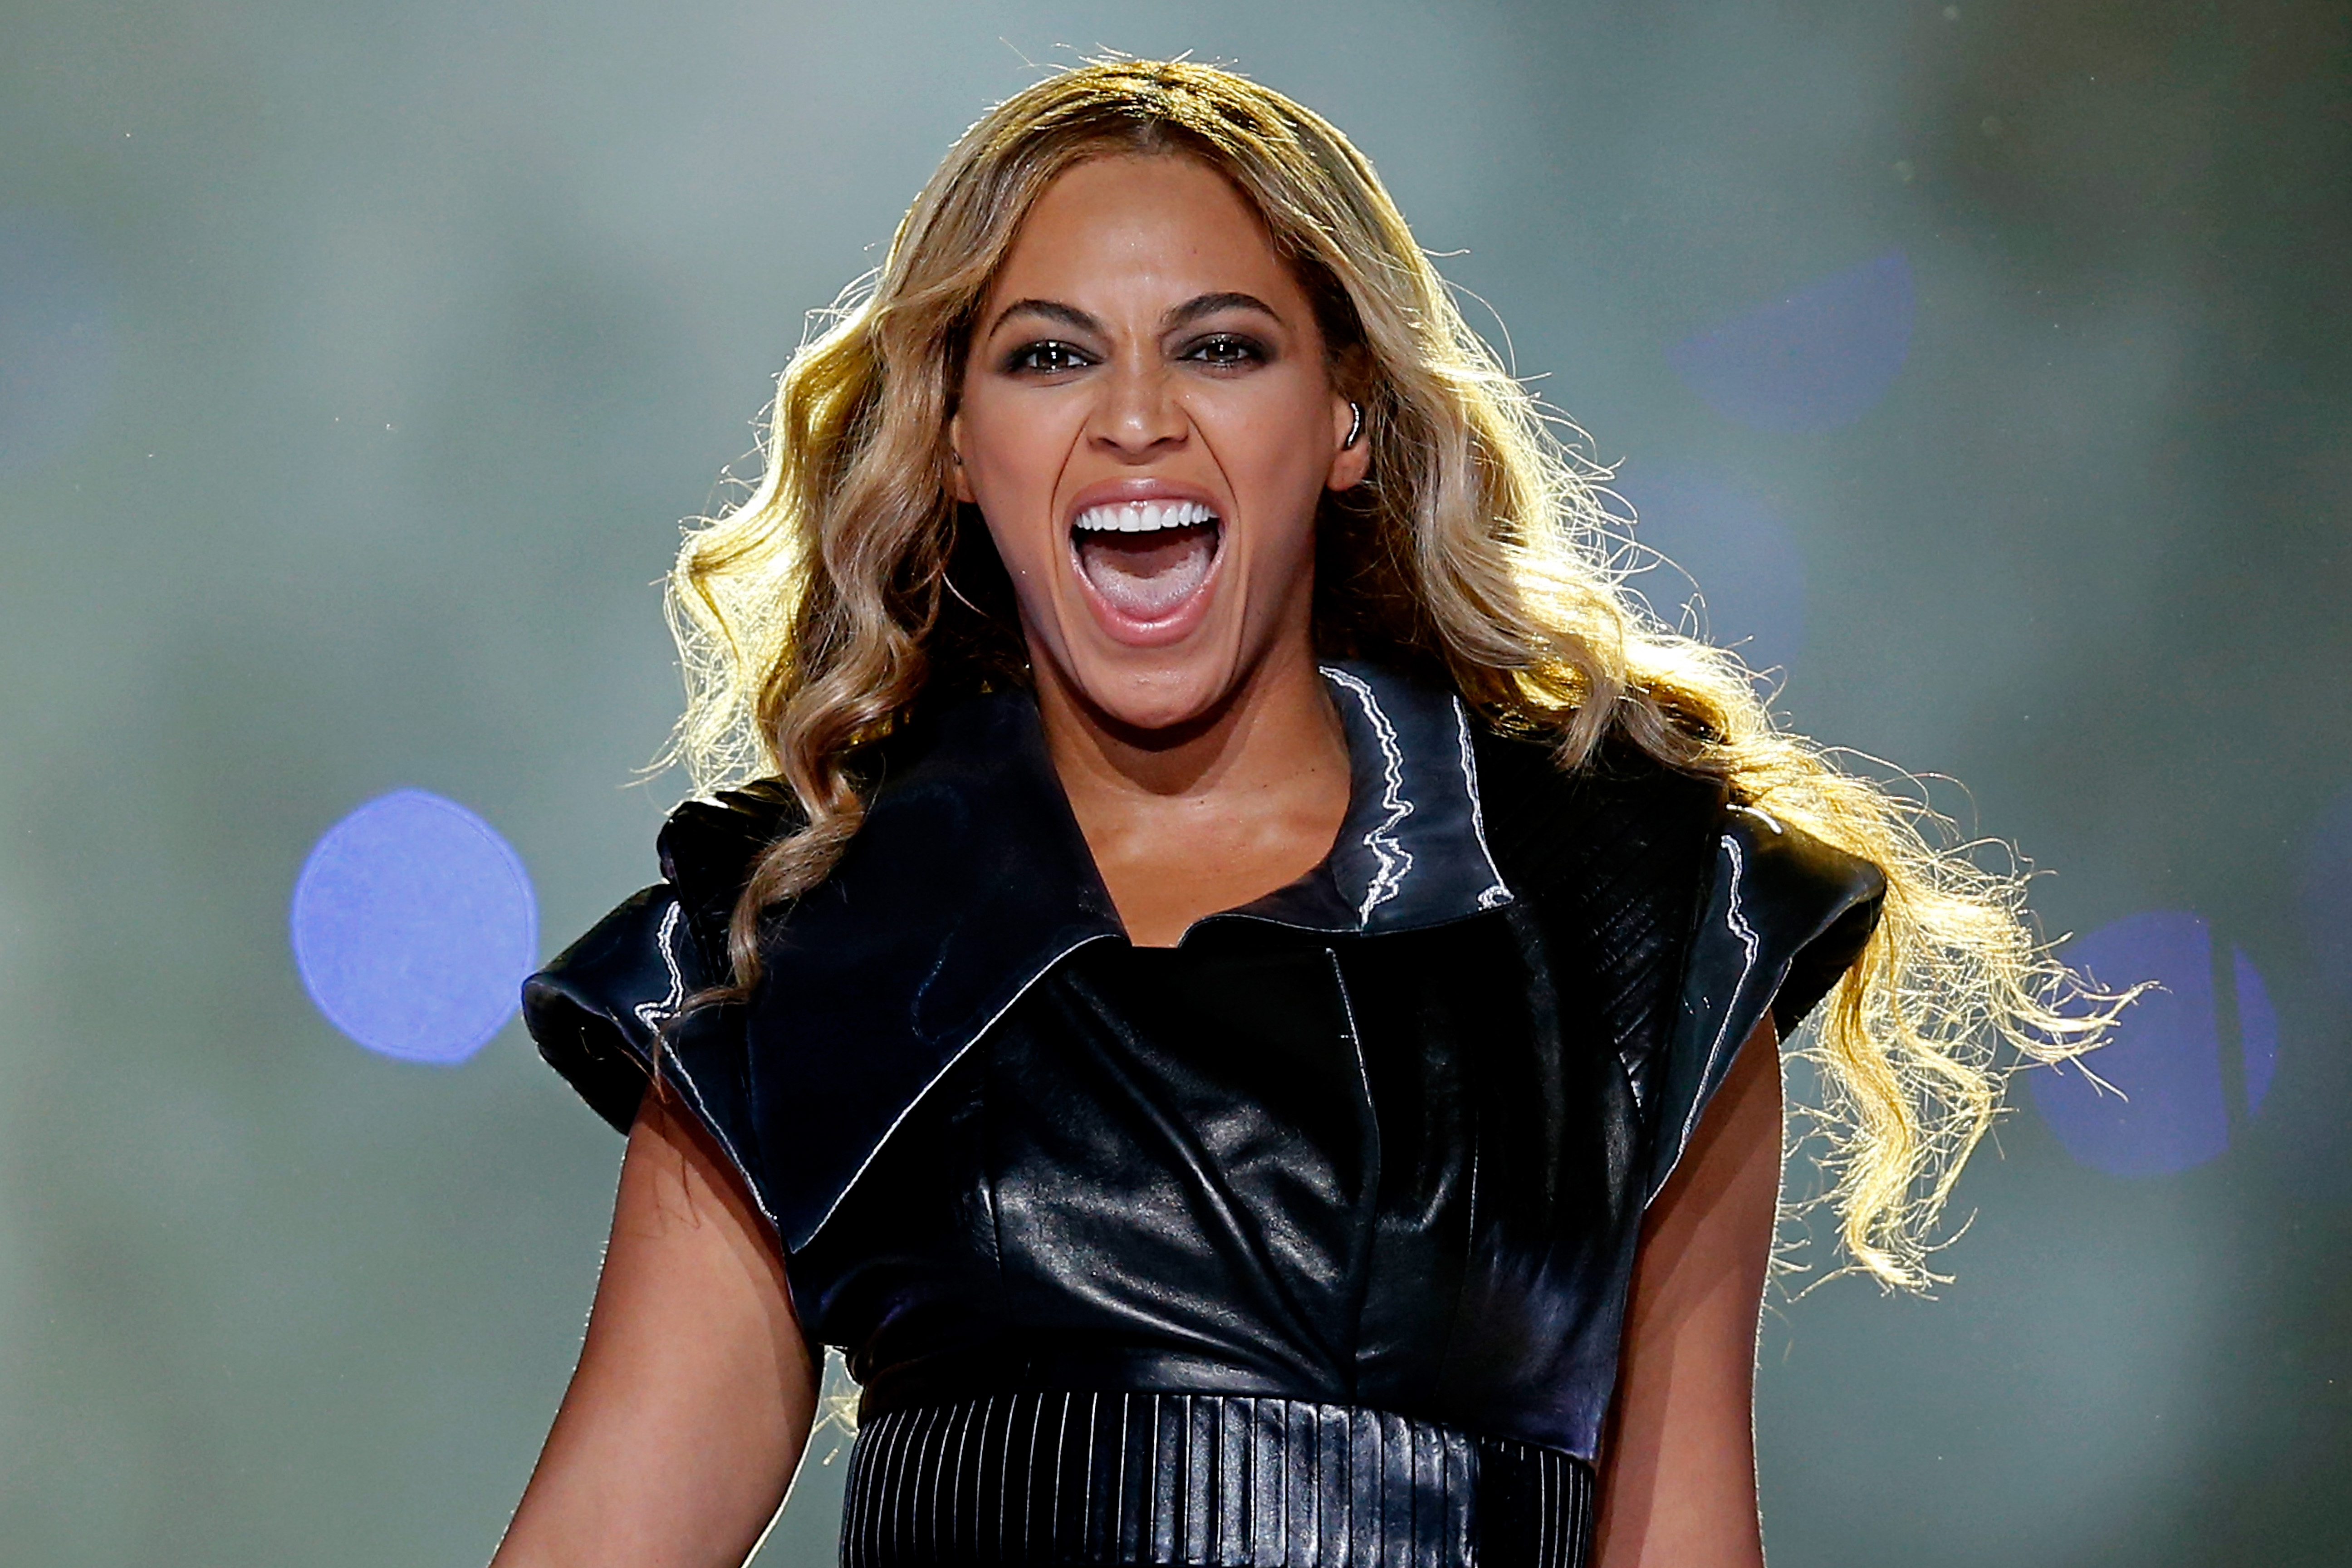 beyonce's super bowl show in 10 fierce photos